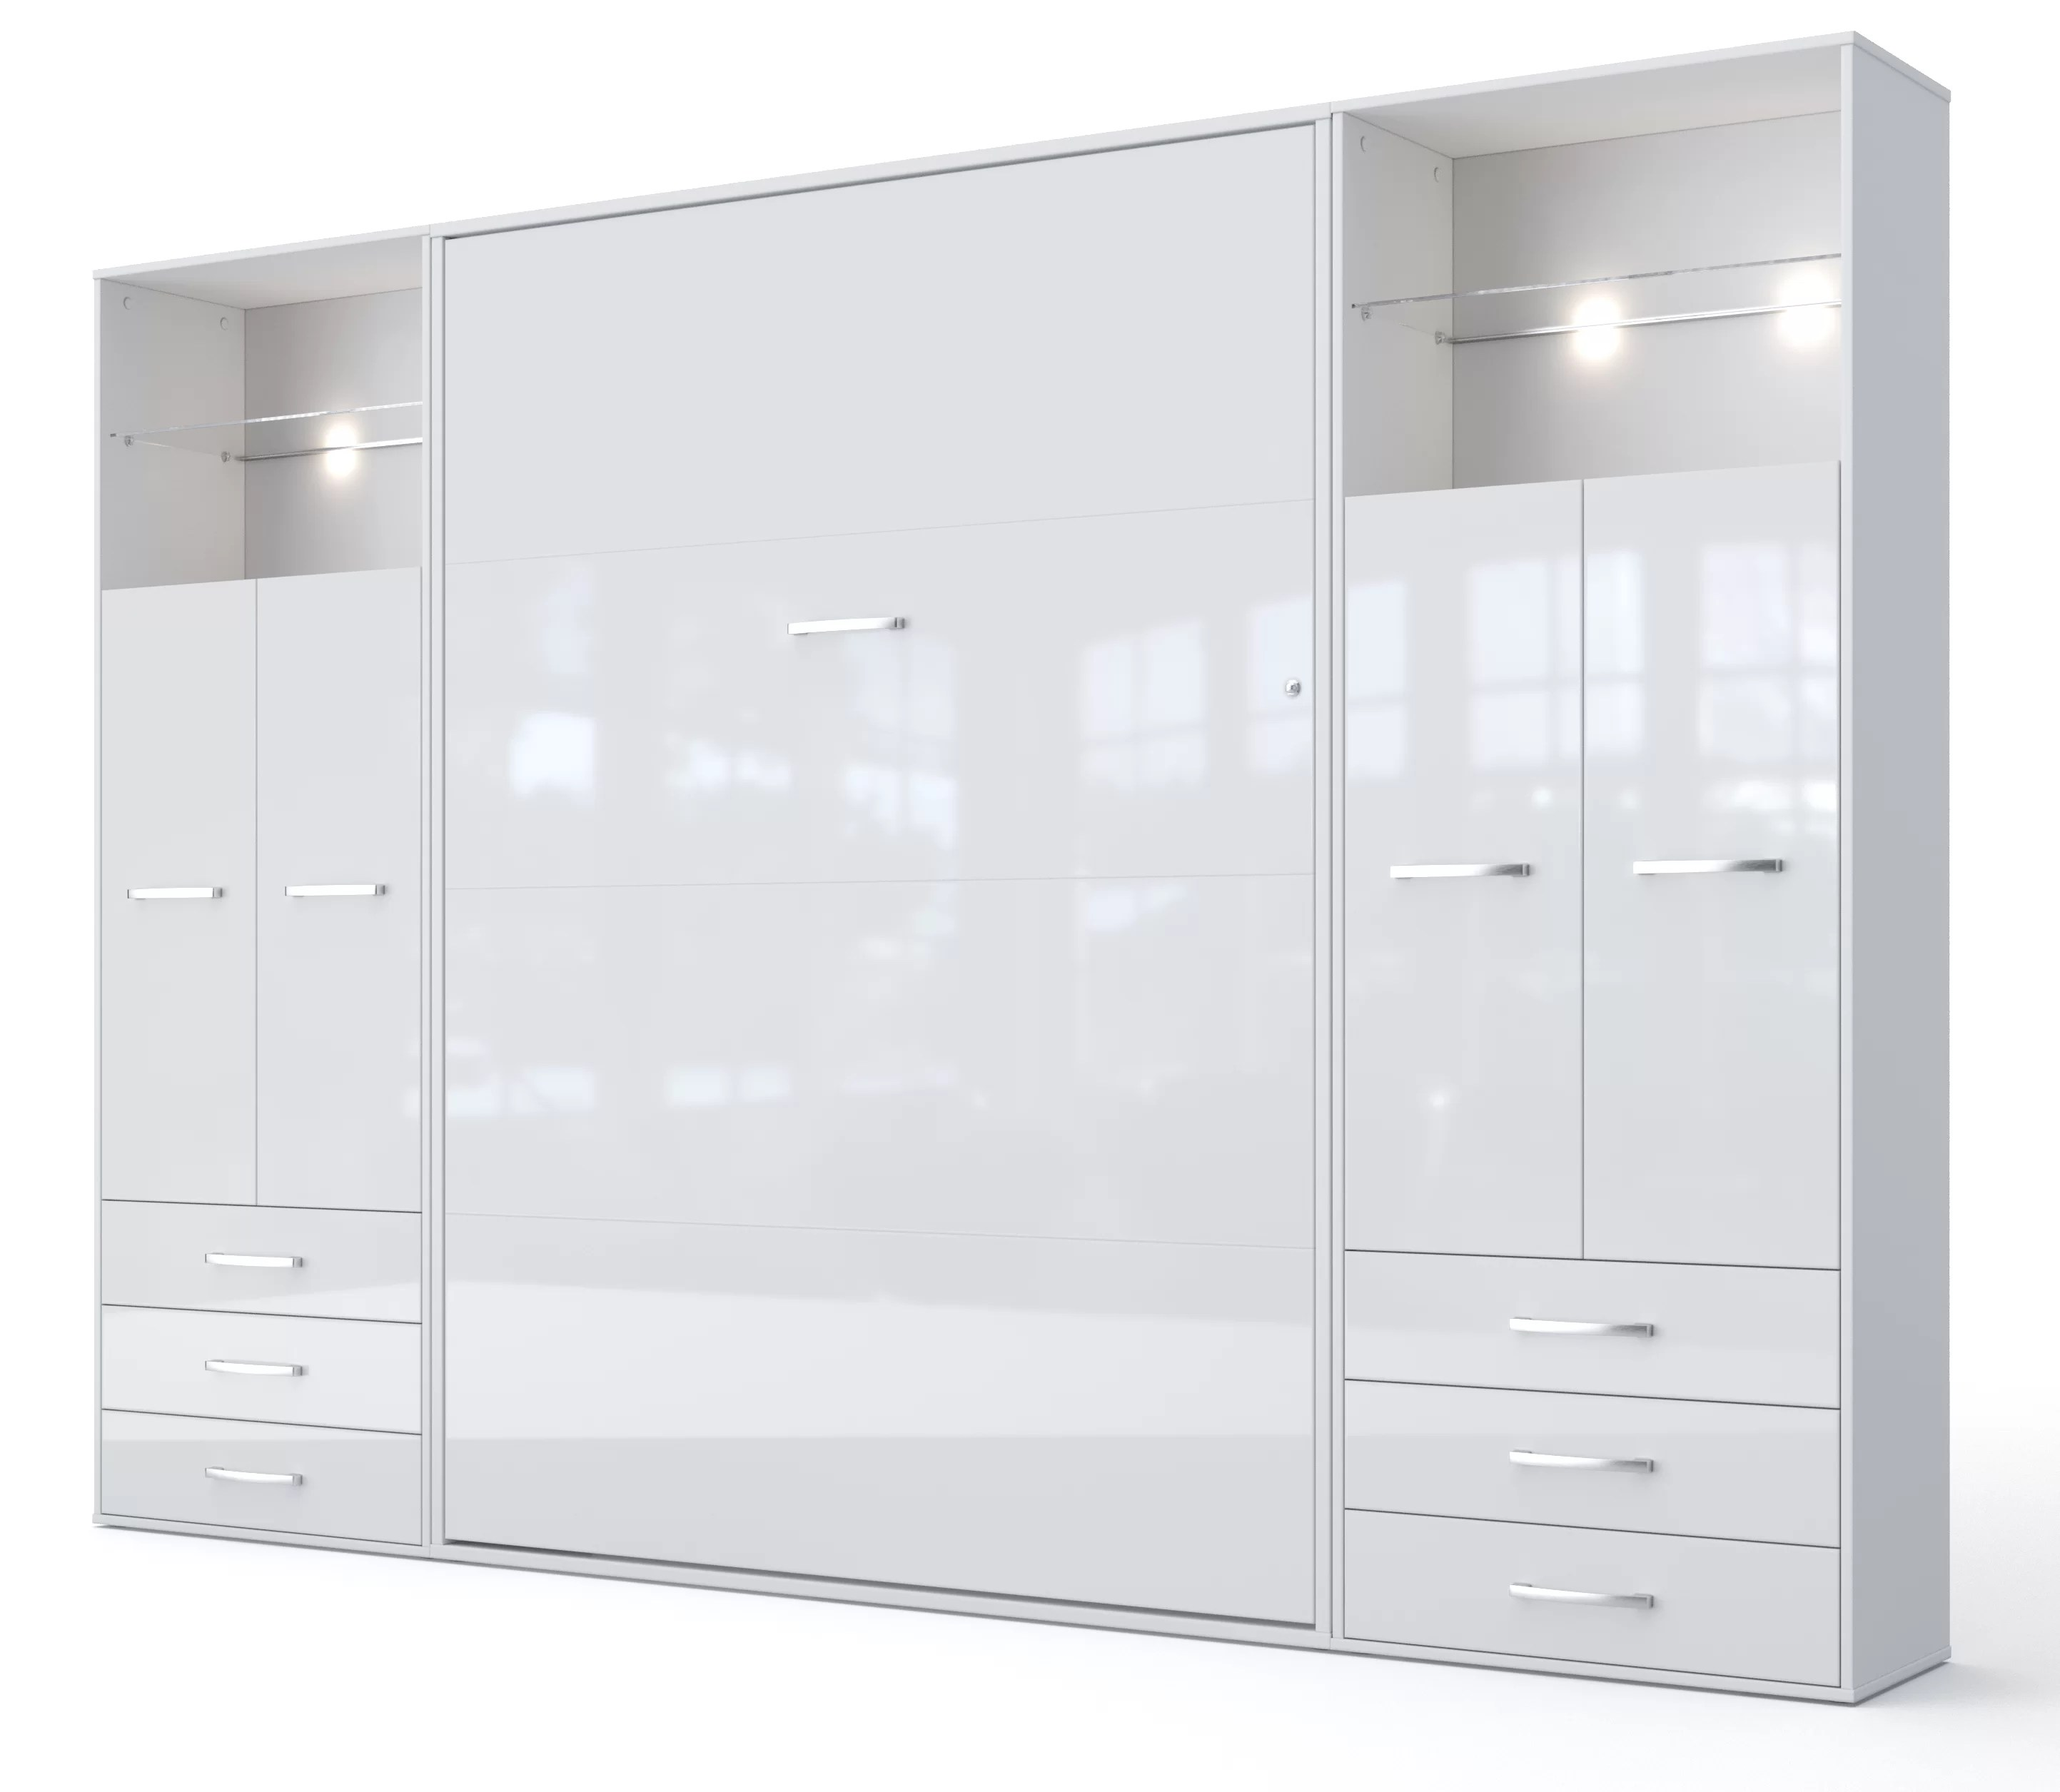 invento vertical wall bed european king size with 2 cabinets